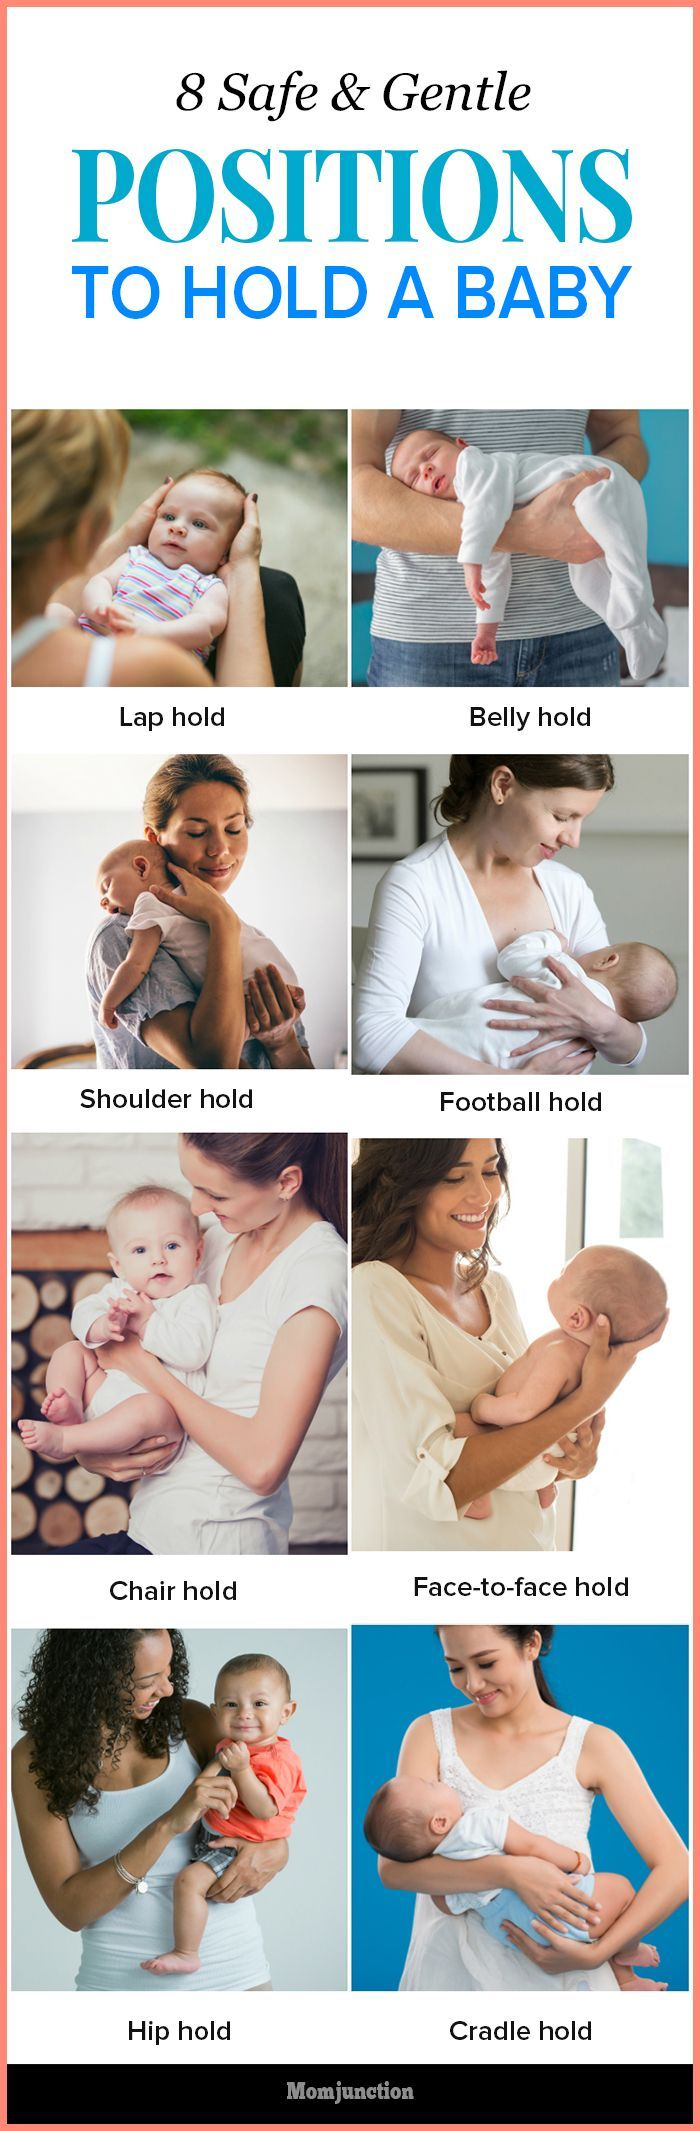 If you're a parent to a newborn, learning how to hold a baby can be intimidating. Here's how to correctly pick up and hold your little one.